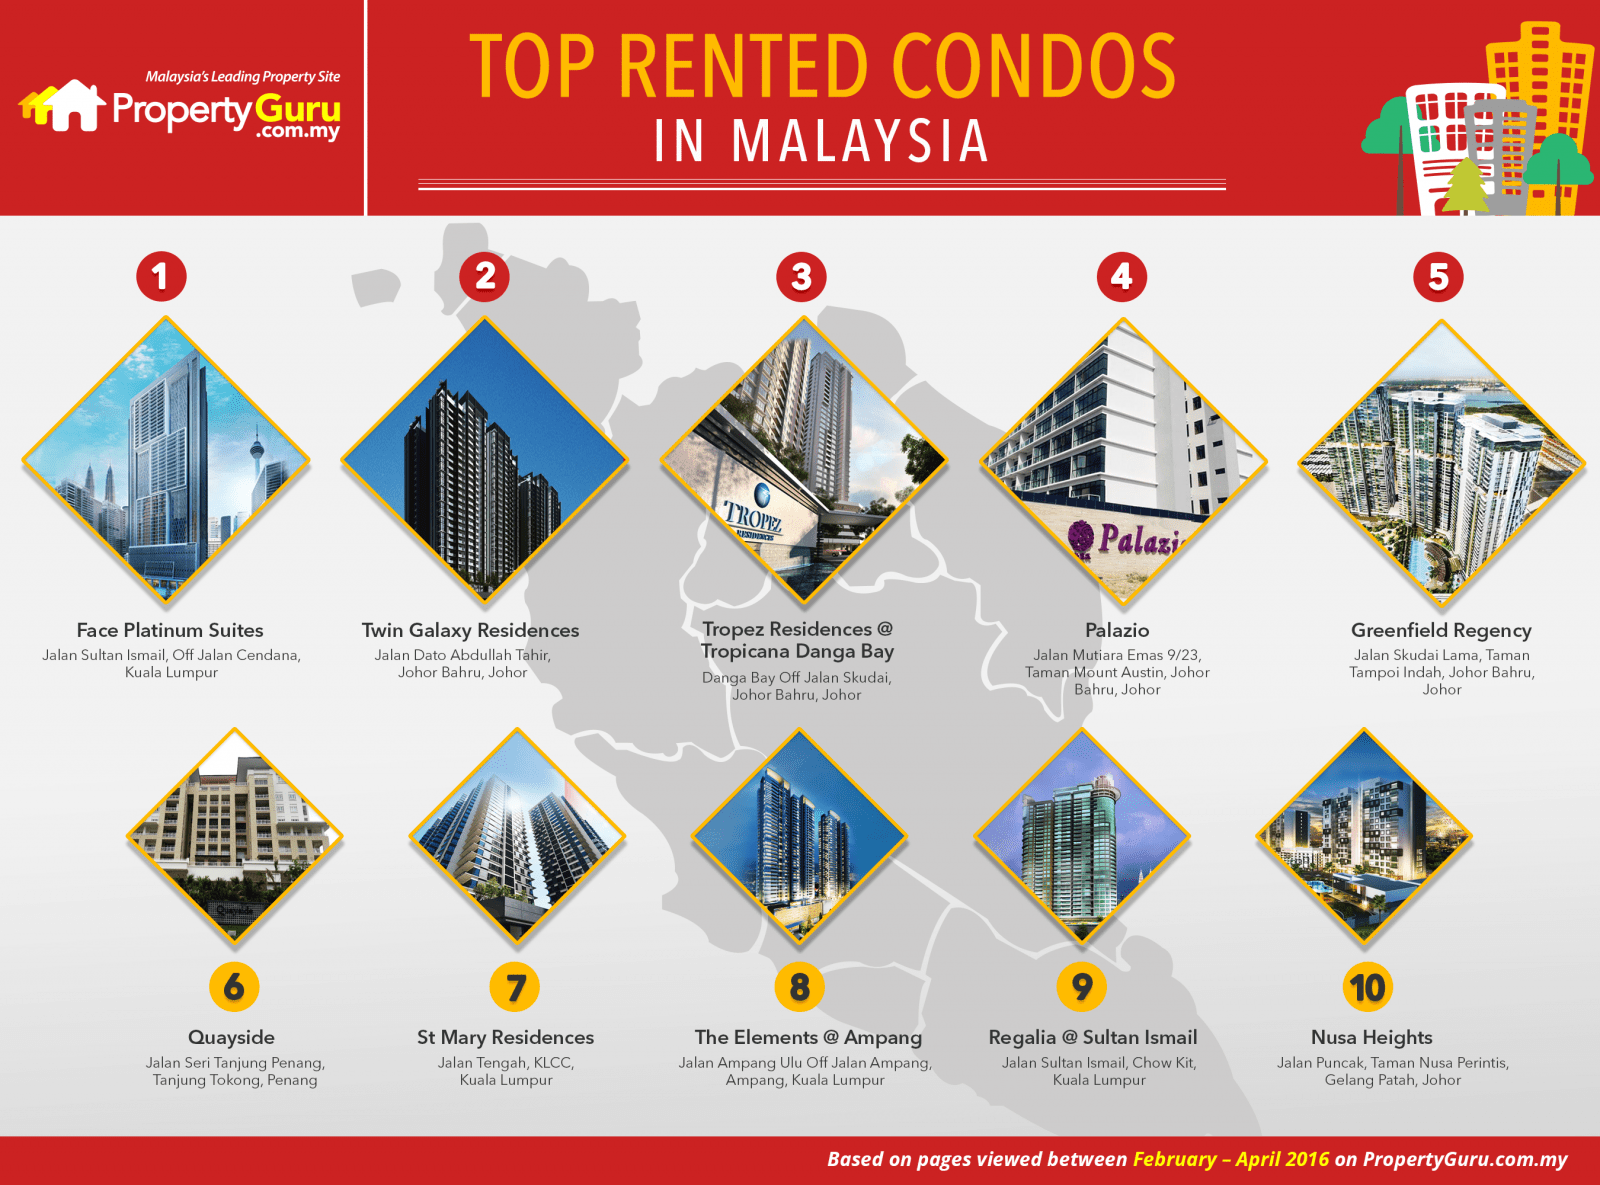 Top-Rented-Condos-in-Malaysia-Infographic